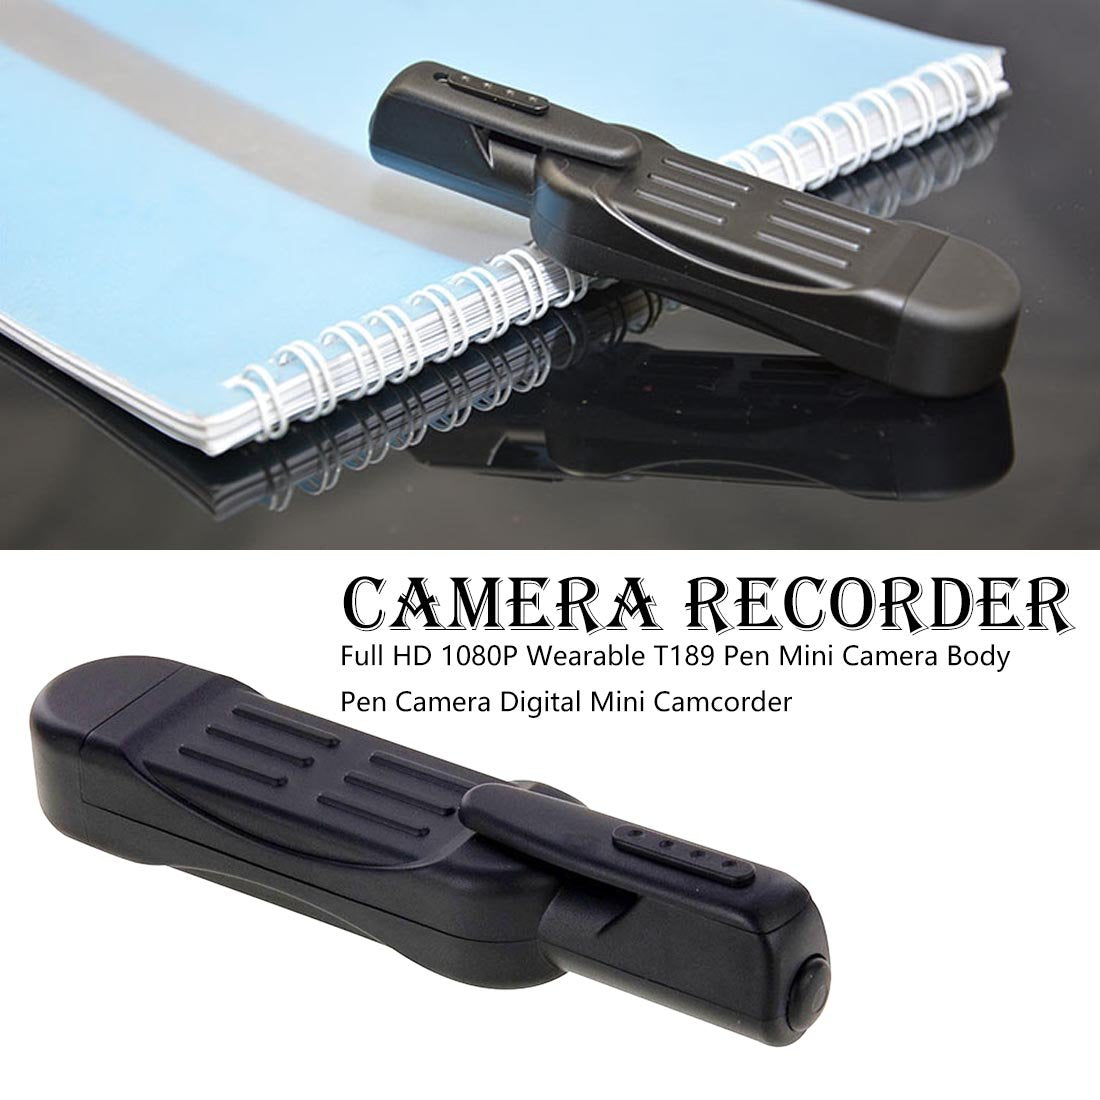 Pocket Pen Recorder™ | Record undetected photos and videos | Buy 2 Free Shipping